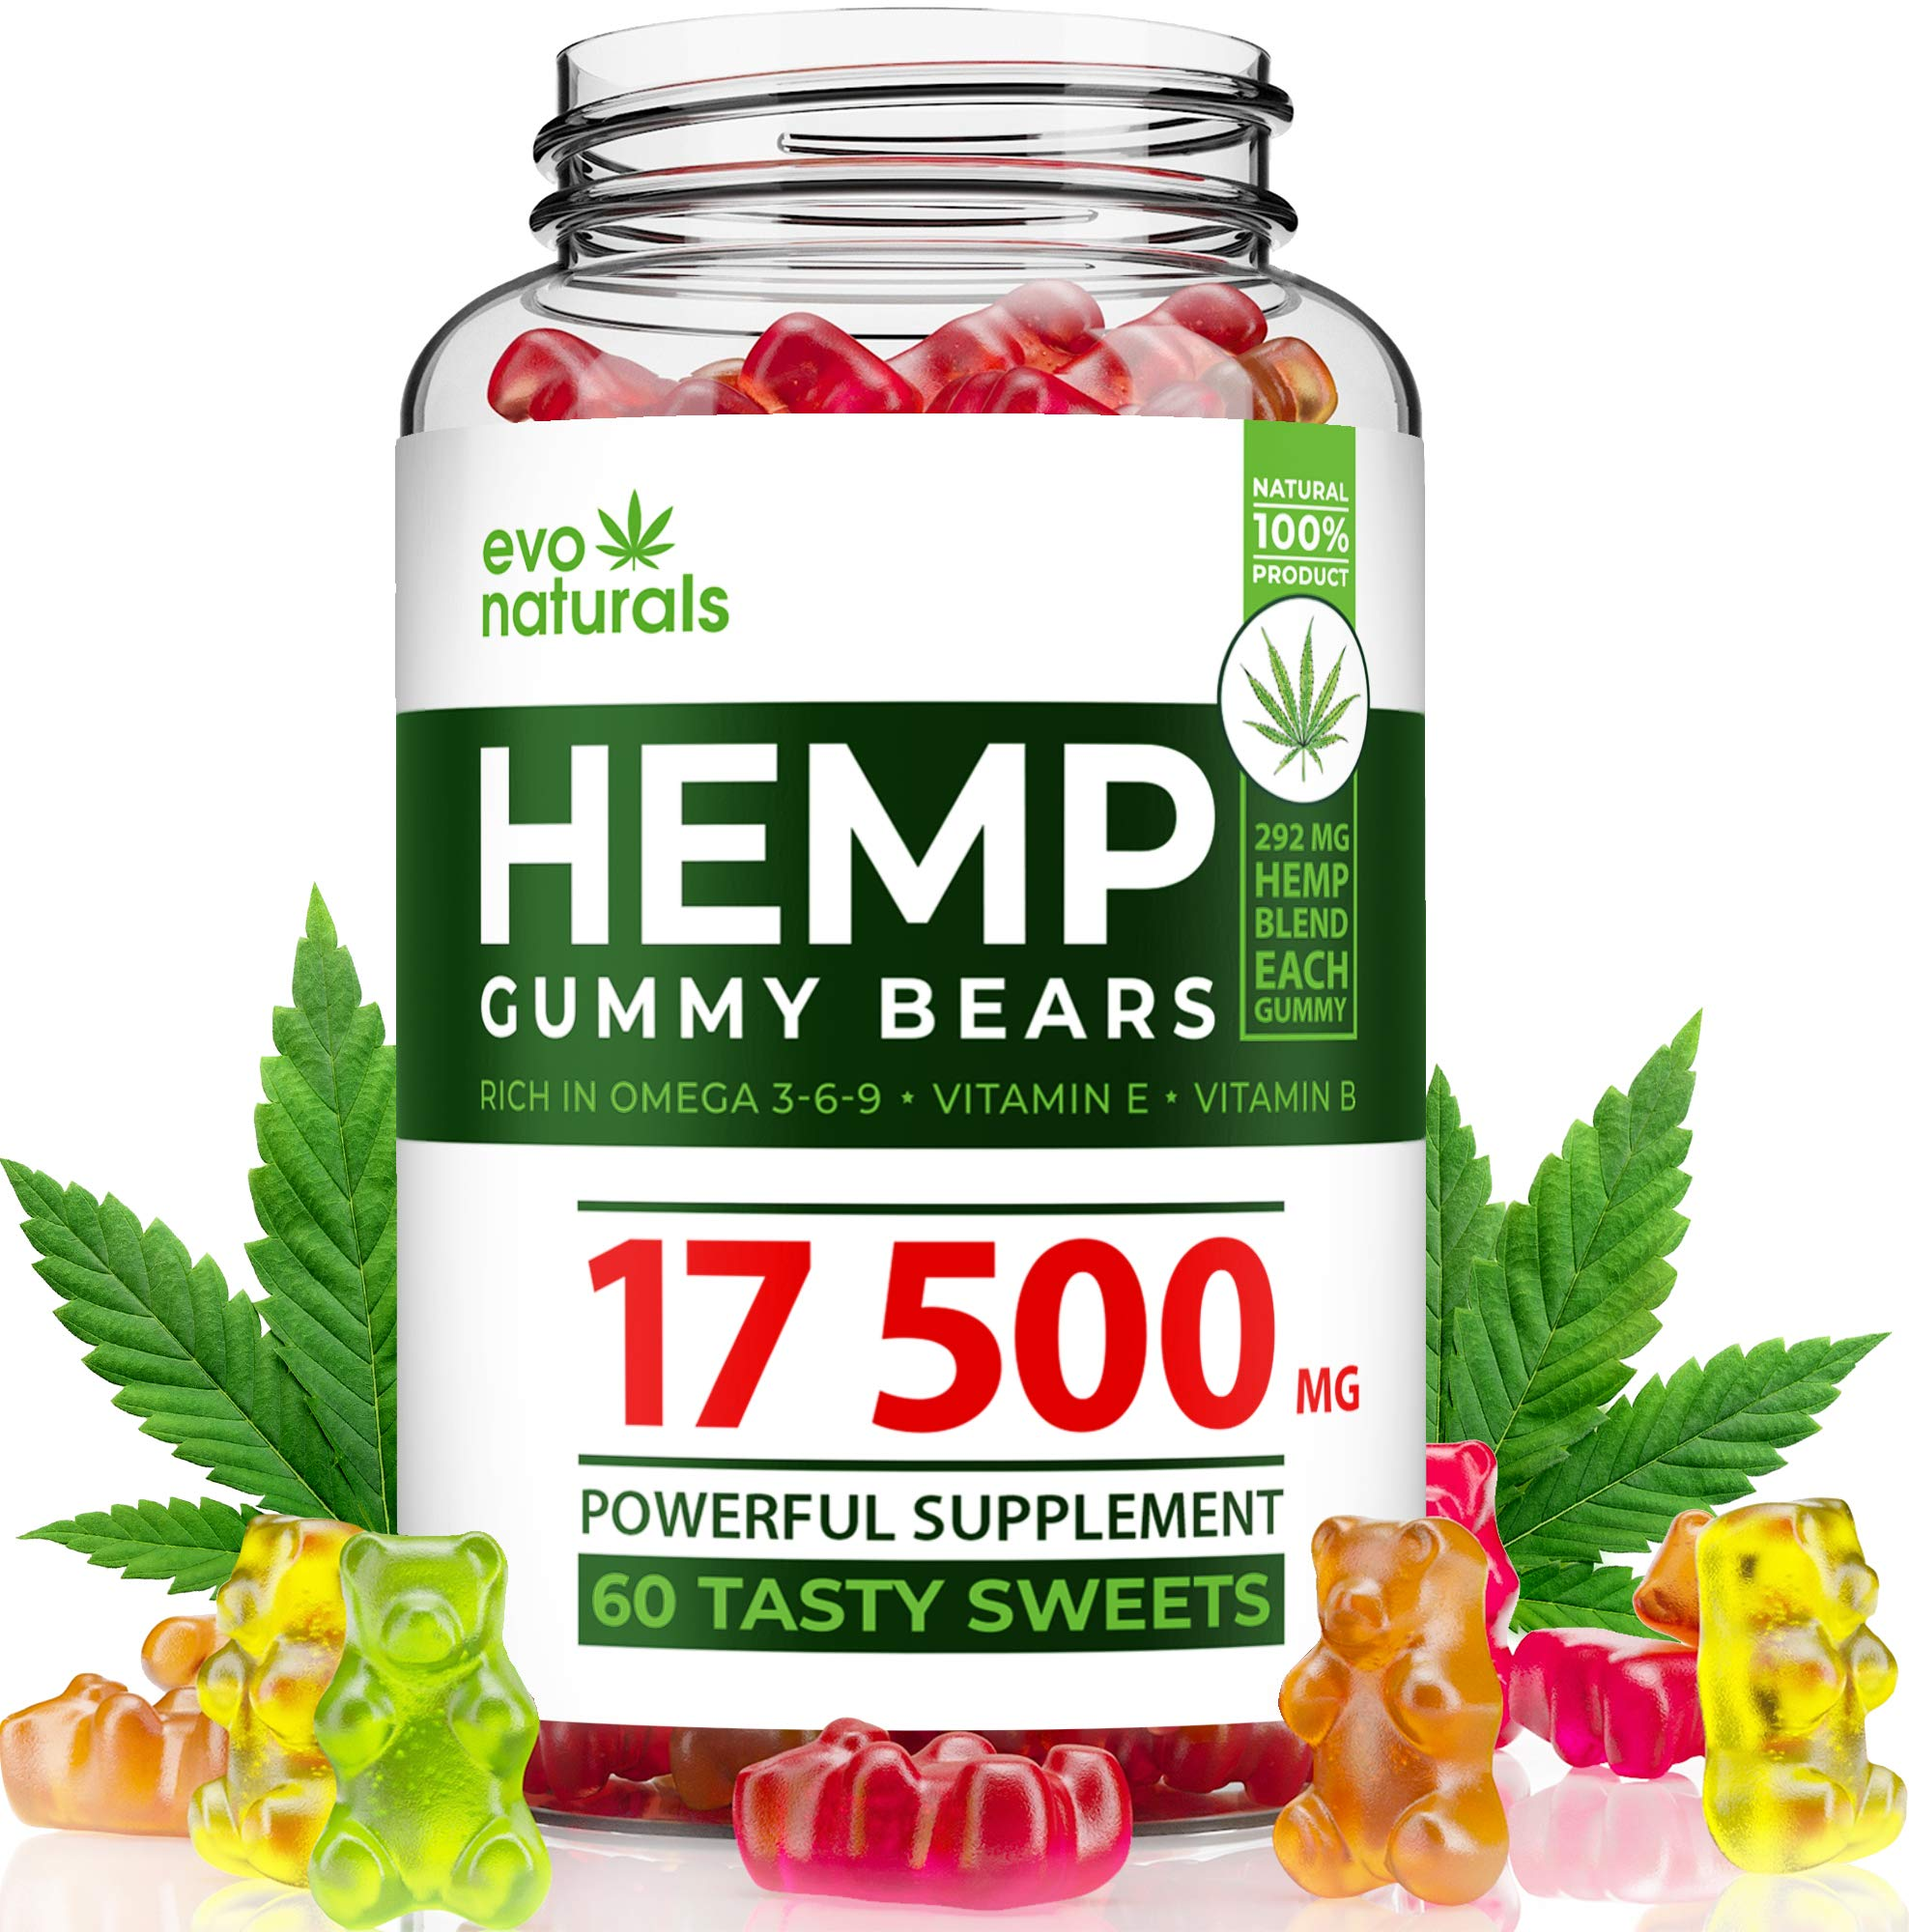 Evo Naturals Hemp Gummies - 17500 MG Blend - 292 MG per Serving - Relaxing Oil Gummies - Stress & Anxiety Relief - Effective Mood Support - with Omega 3,6,9 & Vitamin E, B - Made in USA by EvoNaturals Inc.